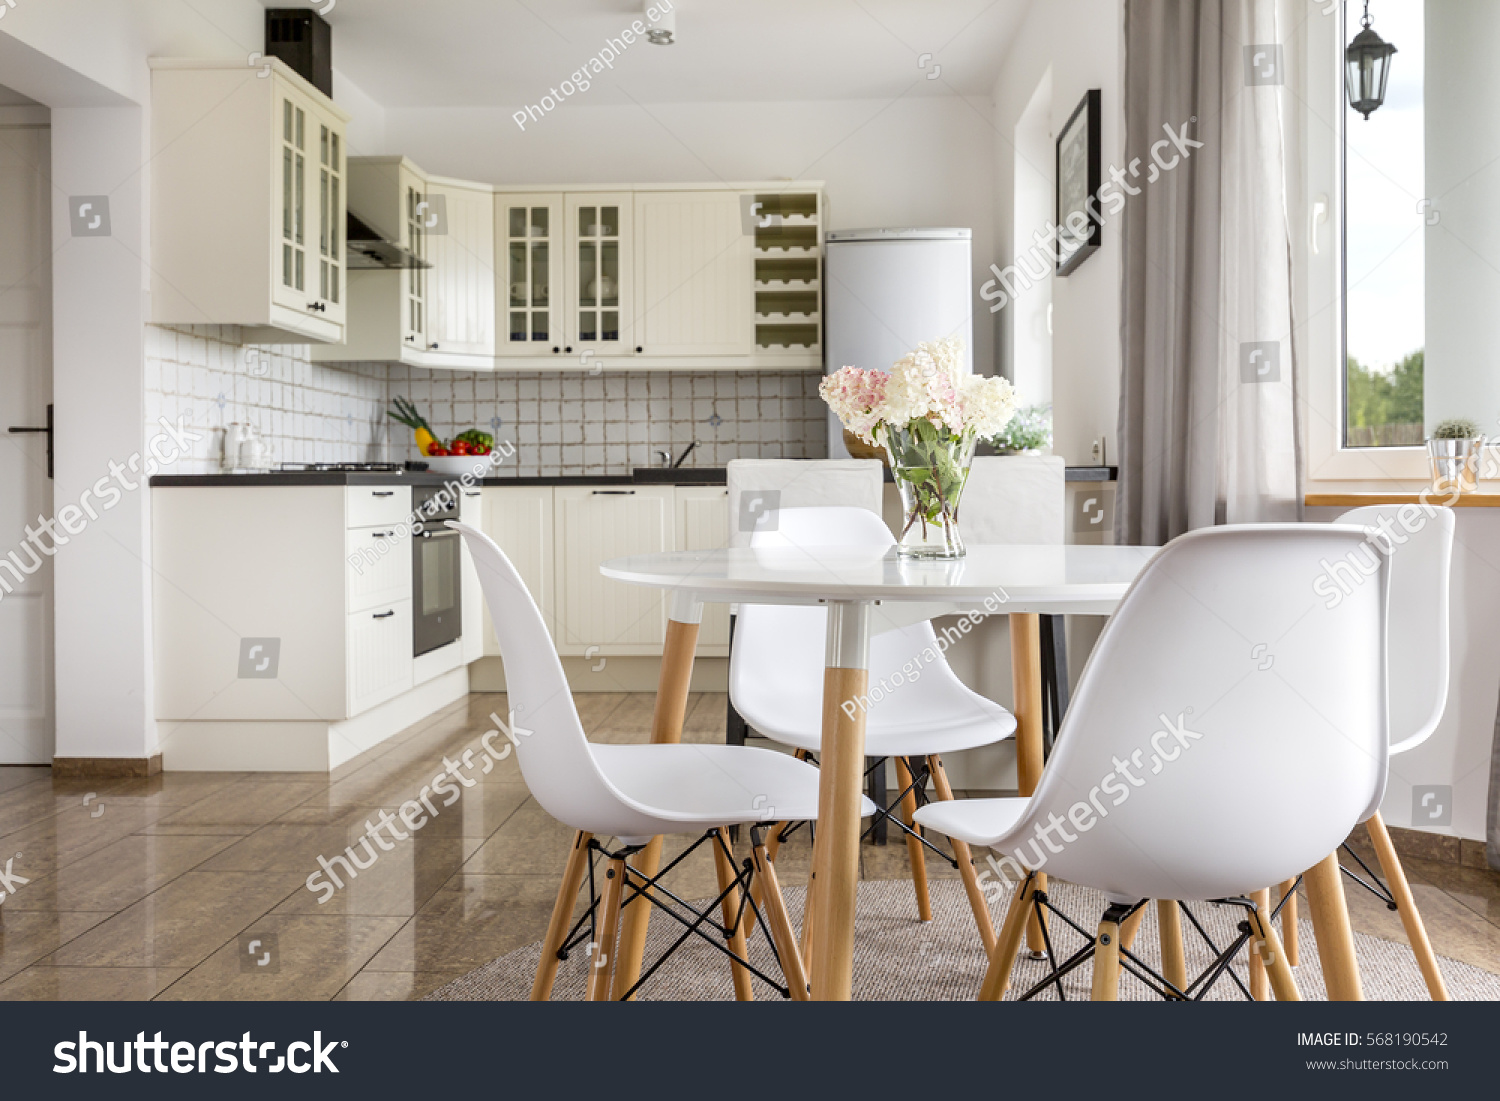 Area of dining room with table and view of the bright open plan kitchen. Area Dining Room Table View Bright Stock Photo 568190542